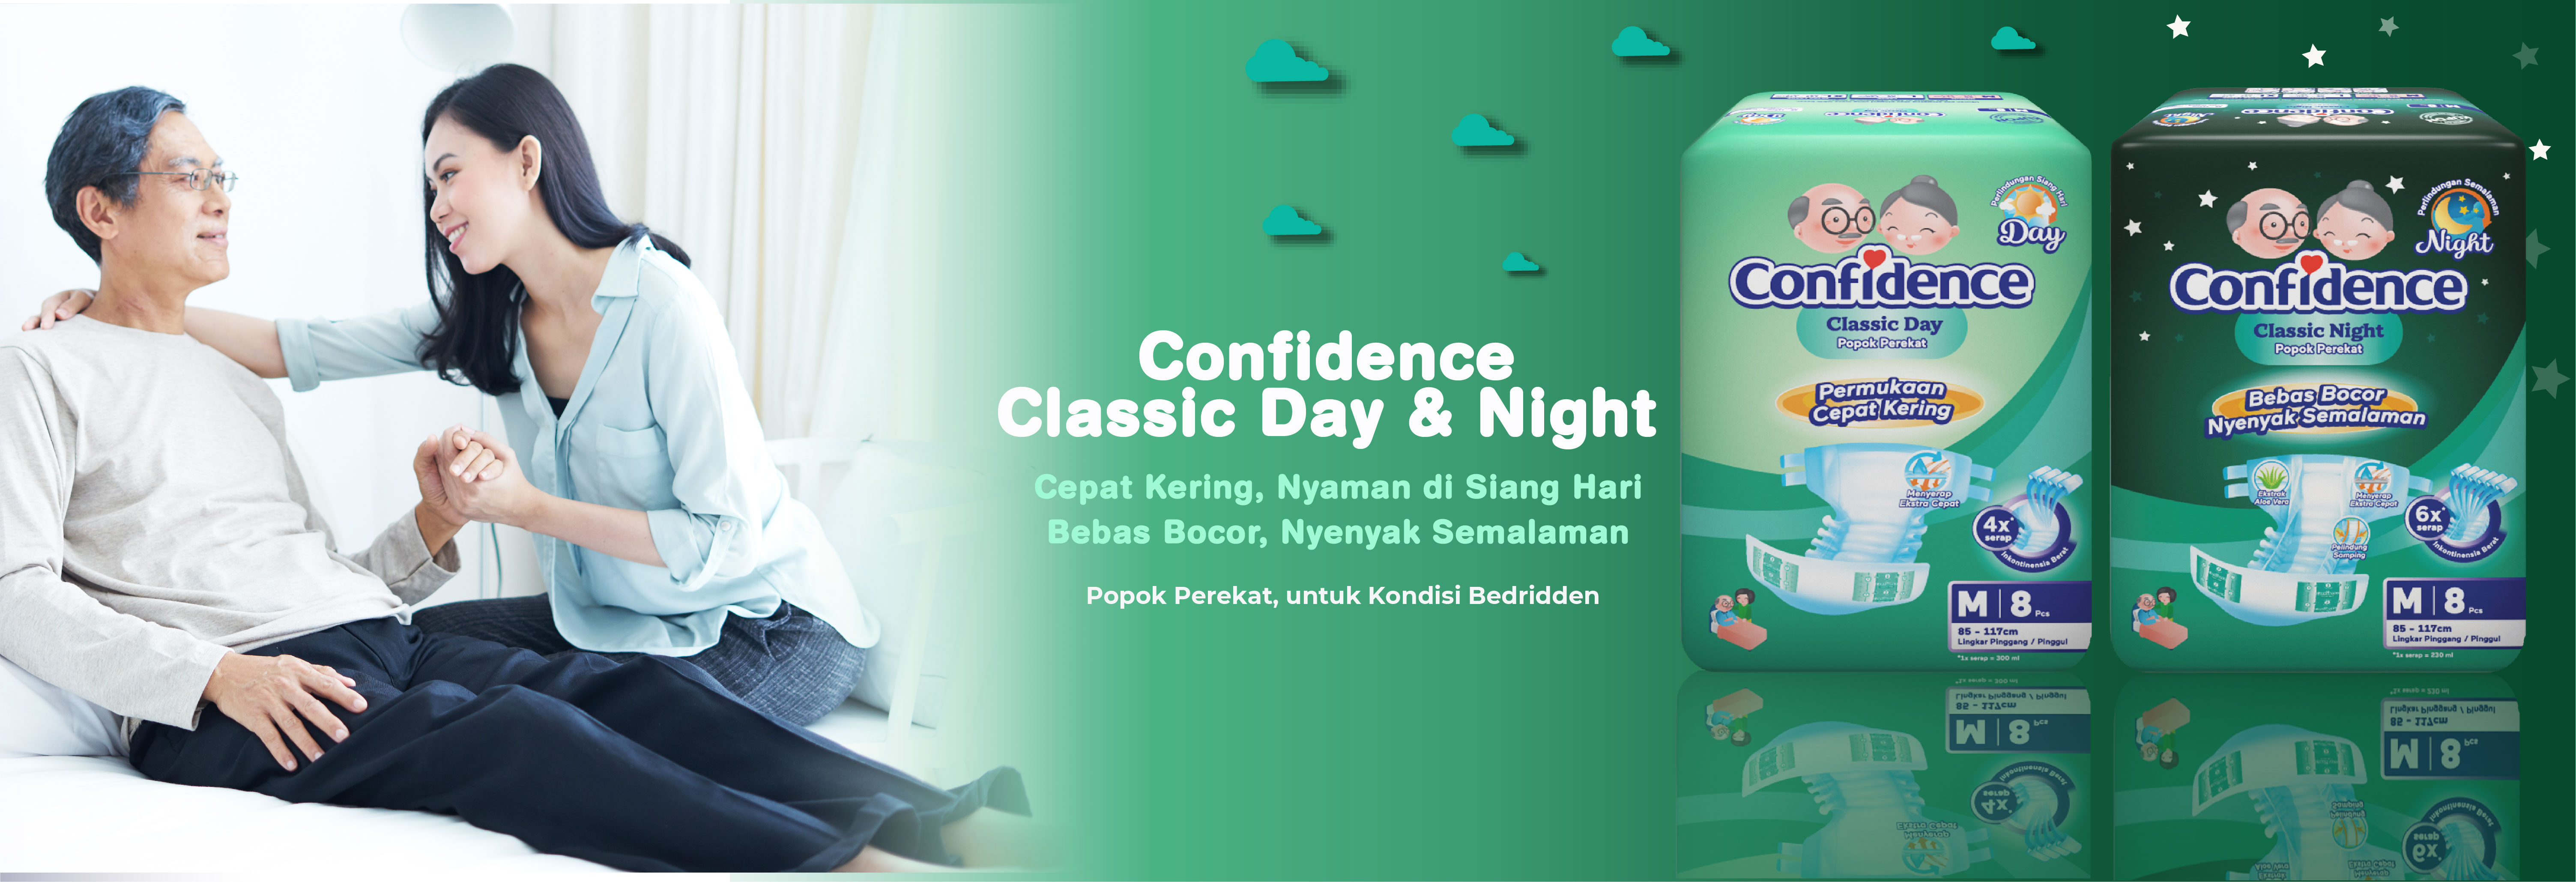 Confidence Adult Diaper Classic Day & Night